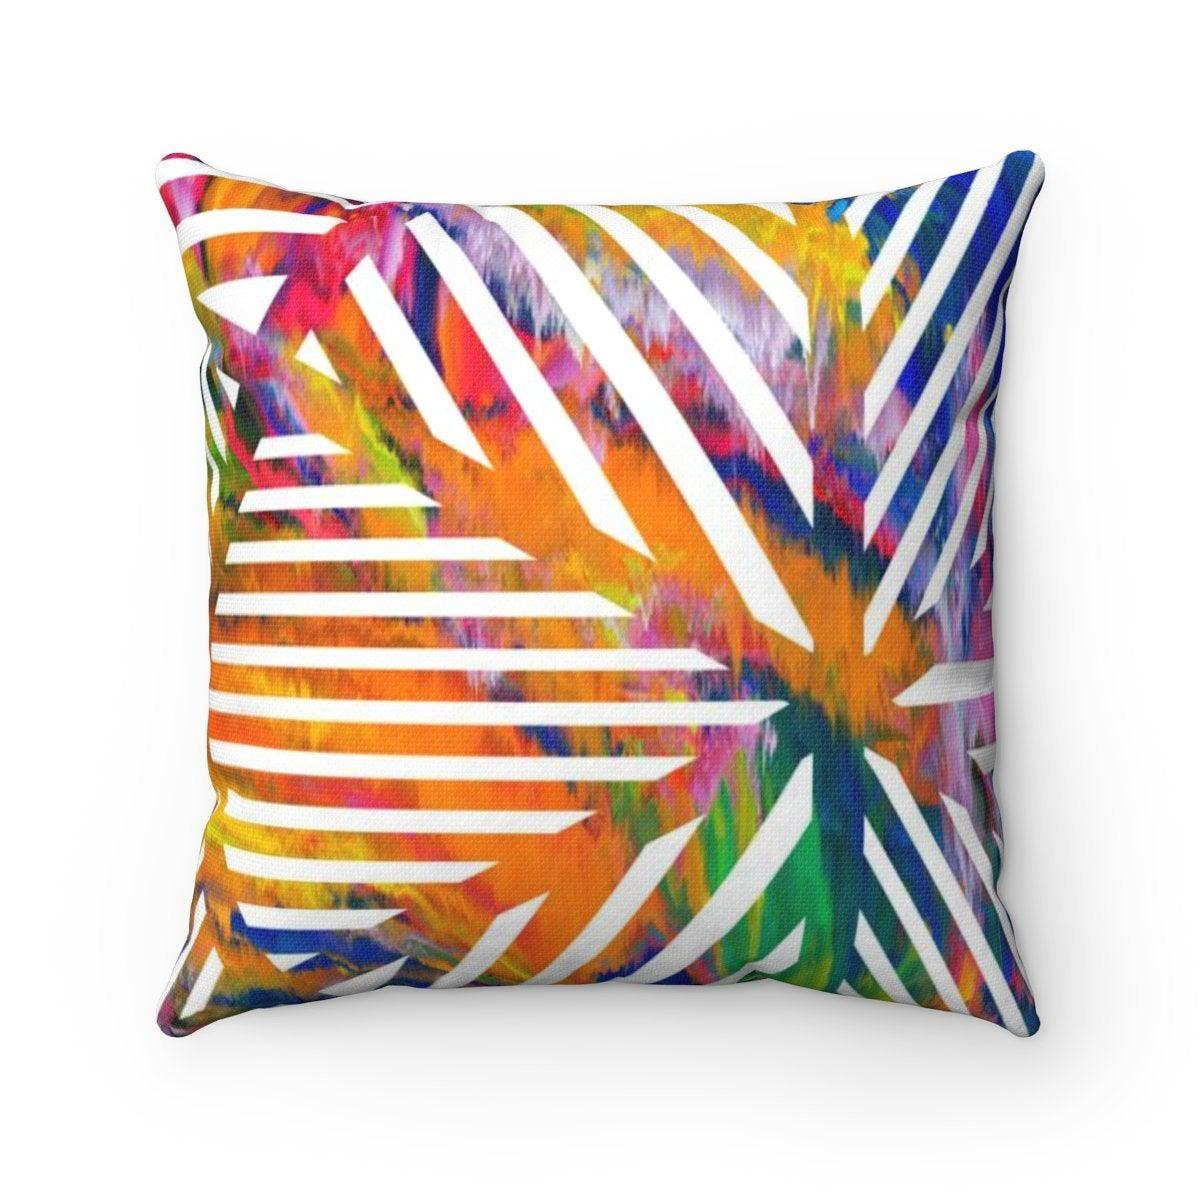 Rainbow geometric decorative cushion cover-Home Decor - Decorative Accents - Pillows & Throws - Decorative Pillows-Maison d'Elite-Très Elite